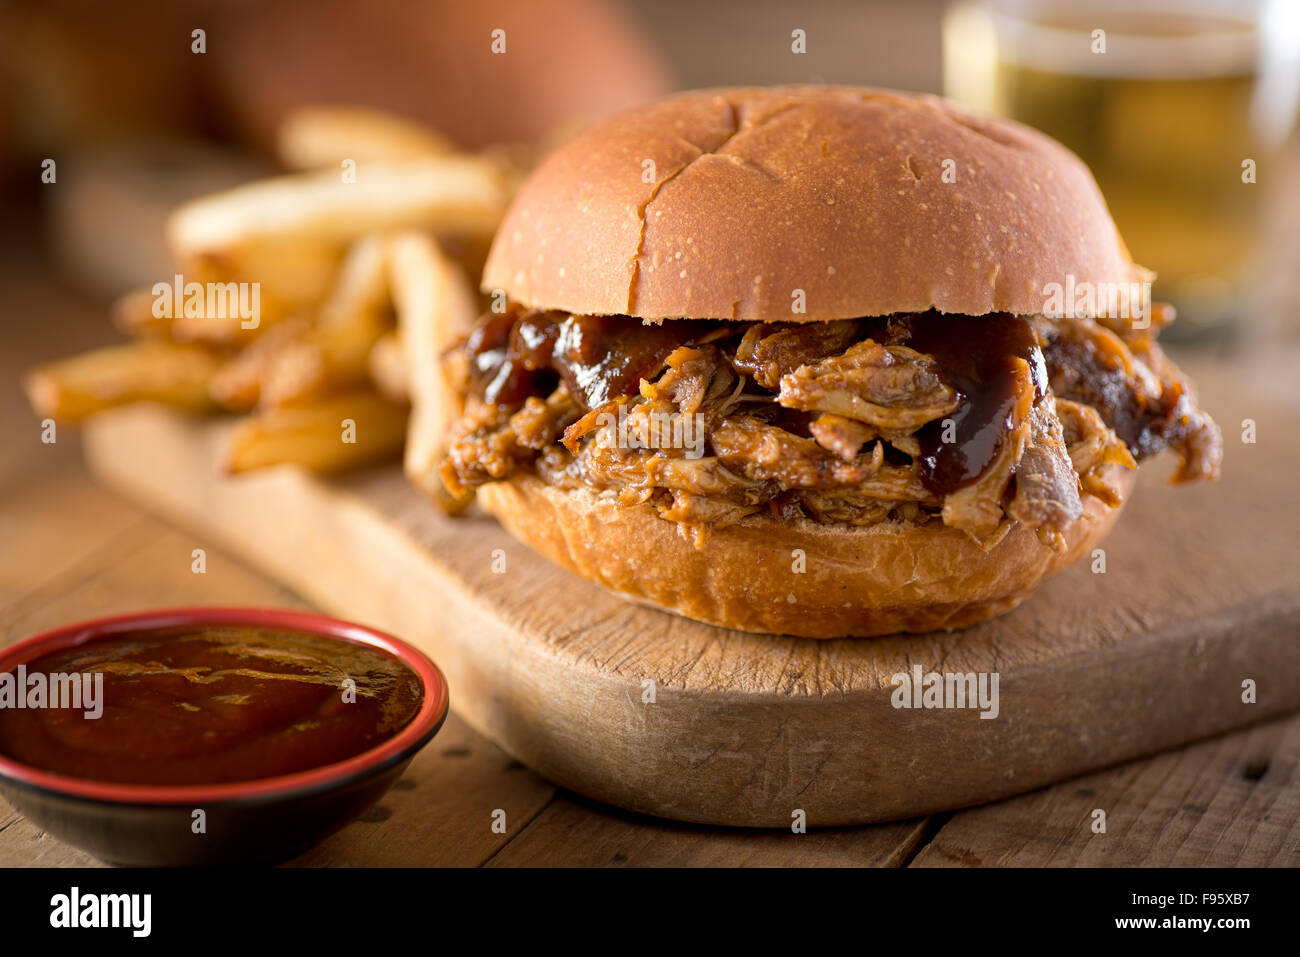 A delicious pulled pork sandwich with barbecue sauce on a bun. - Stock Image